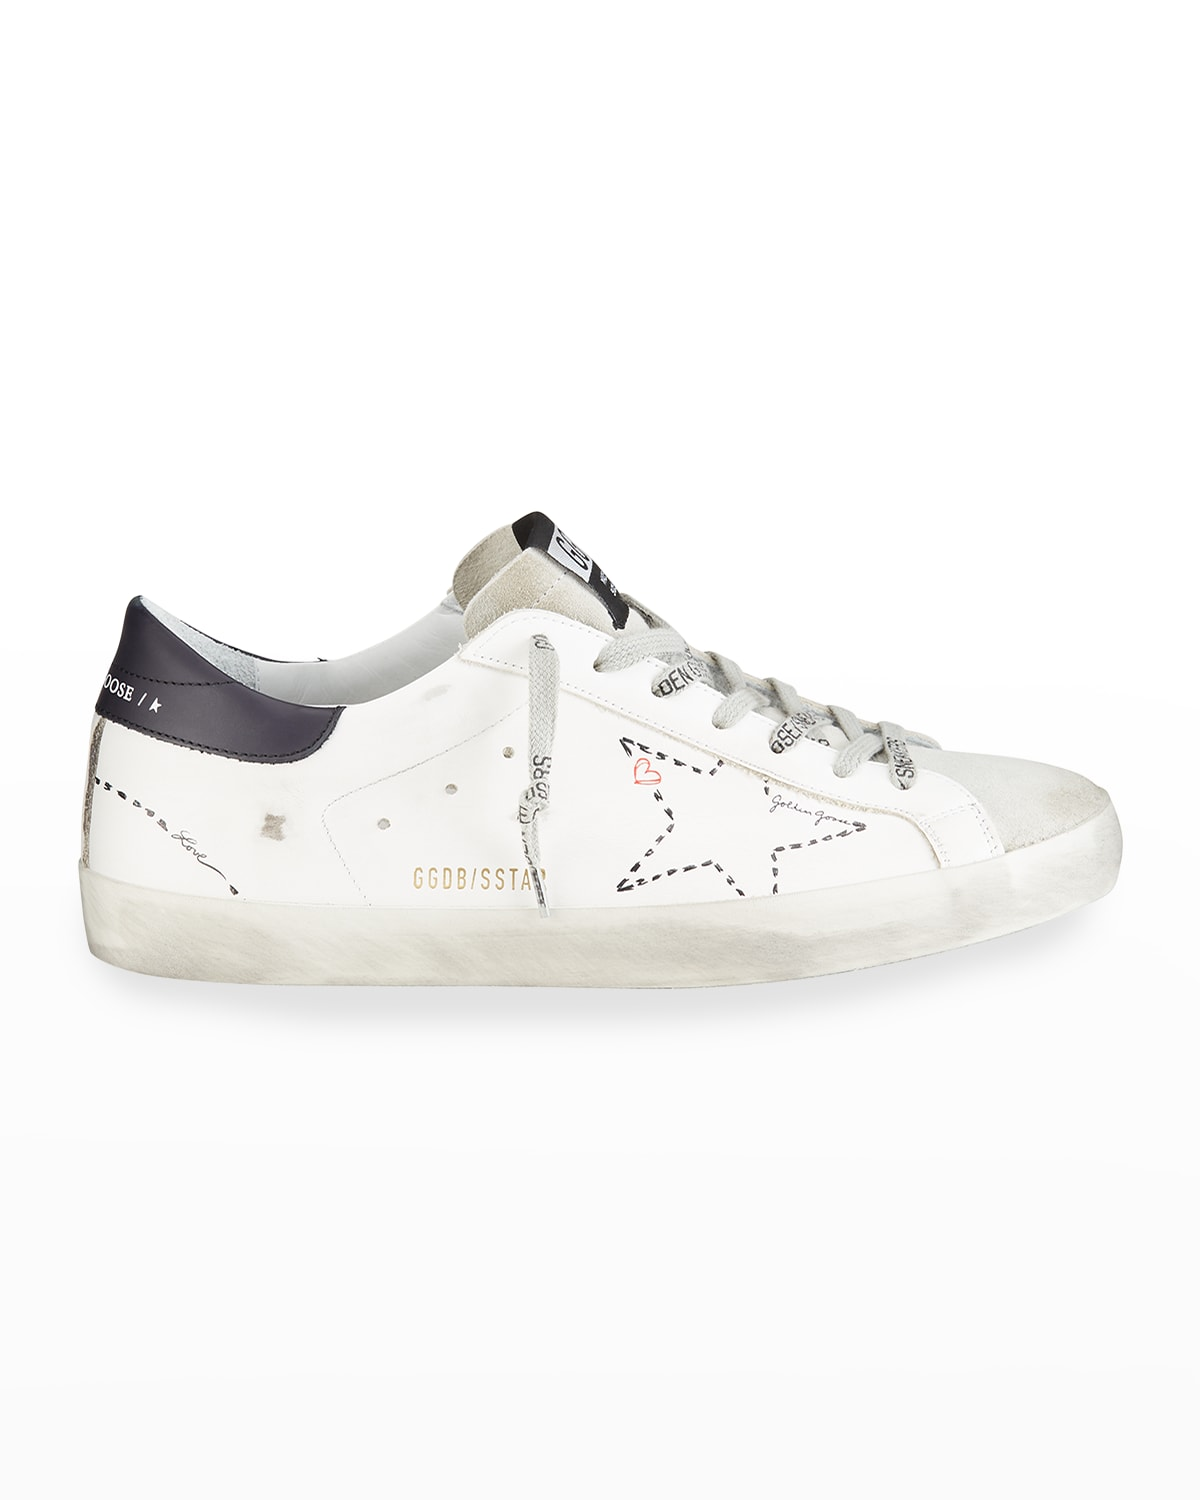 Men's SuperStar Dotted Outline Print Low-Top Sneakers